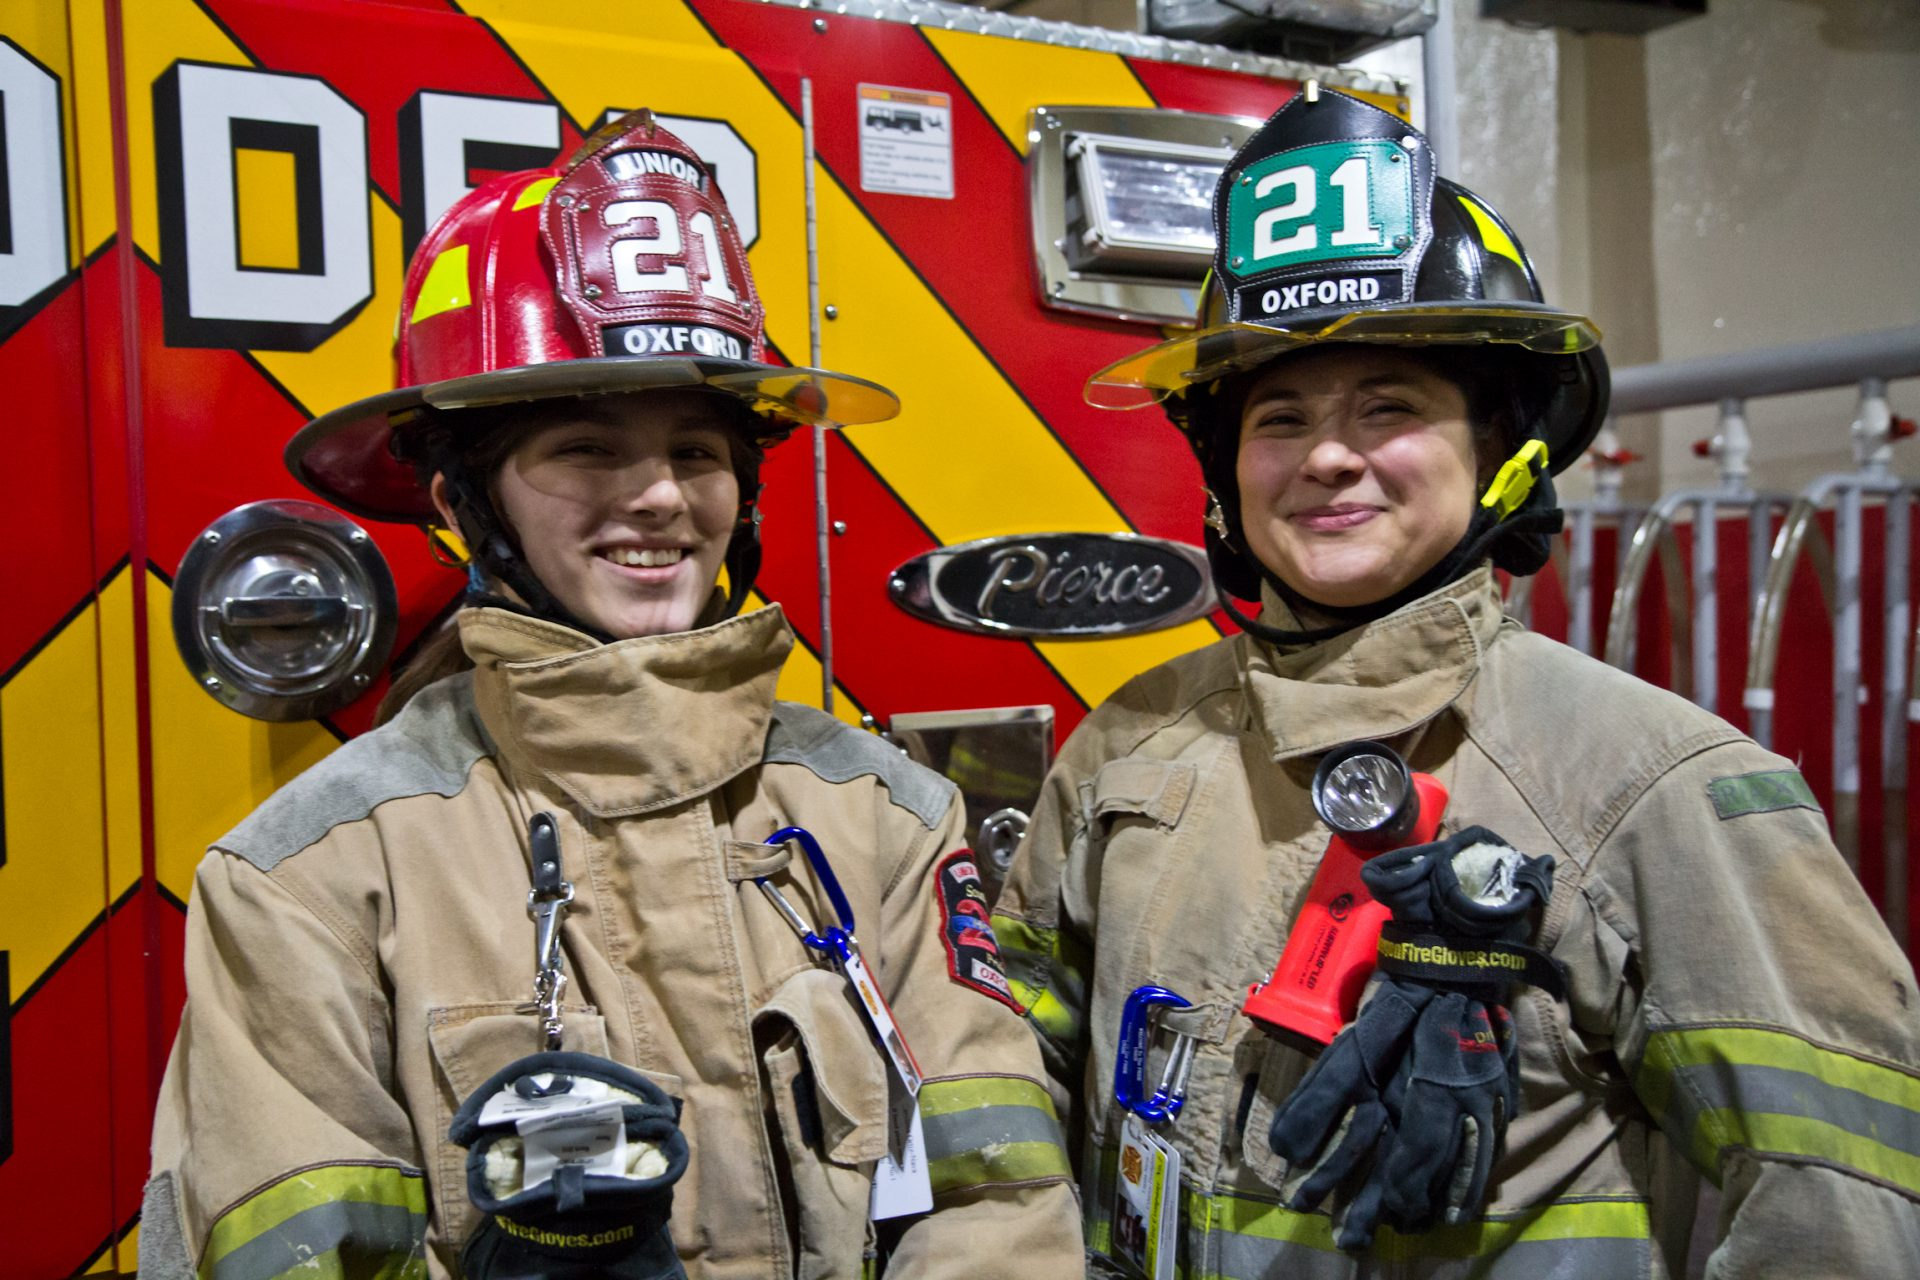 Carolena Nava (left) and her mom Lupita Nava are firefighters in Oxford, Pa.